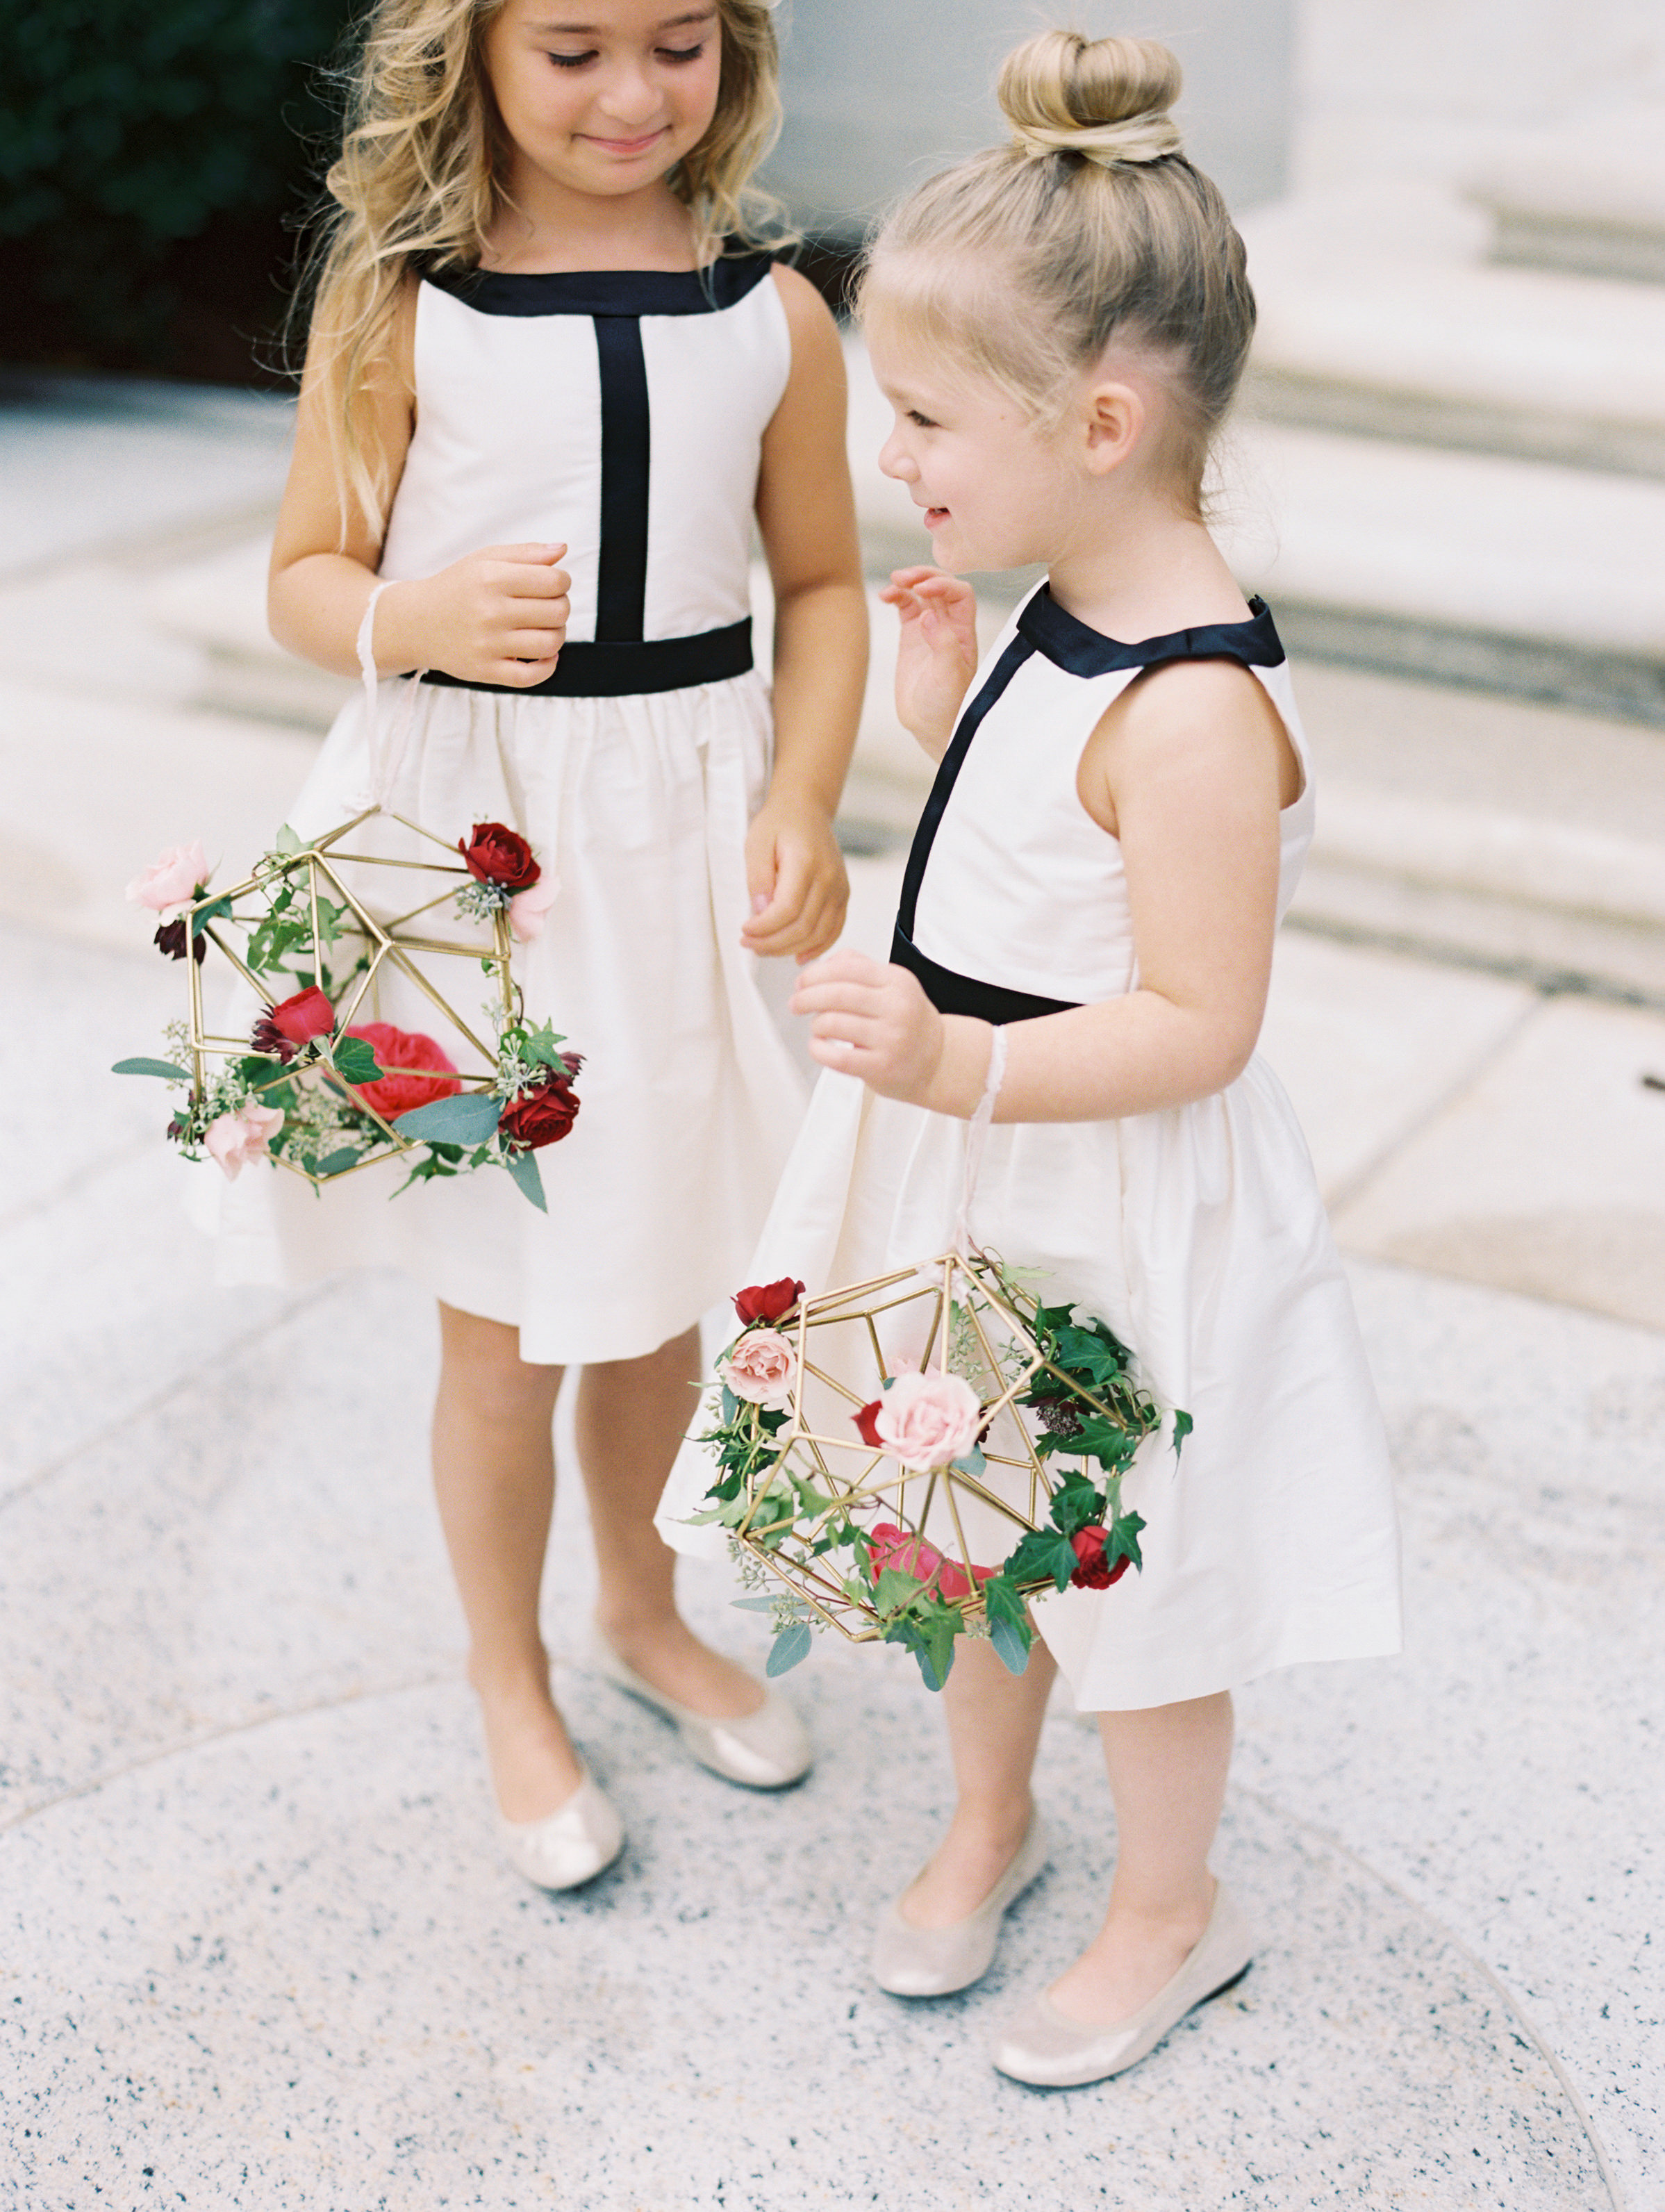 34 of the Cutest Flower Girl Baskets from Real Weddings